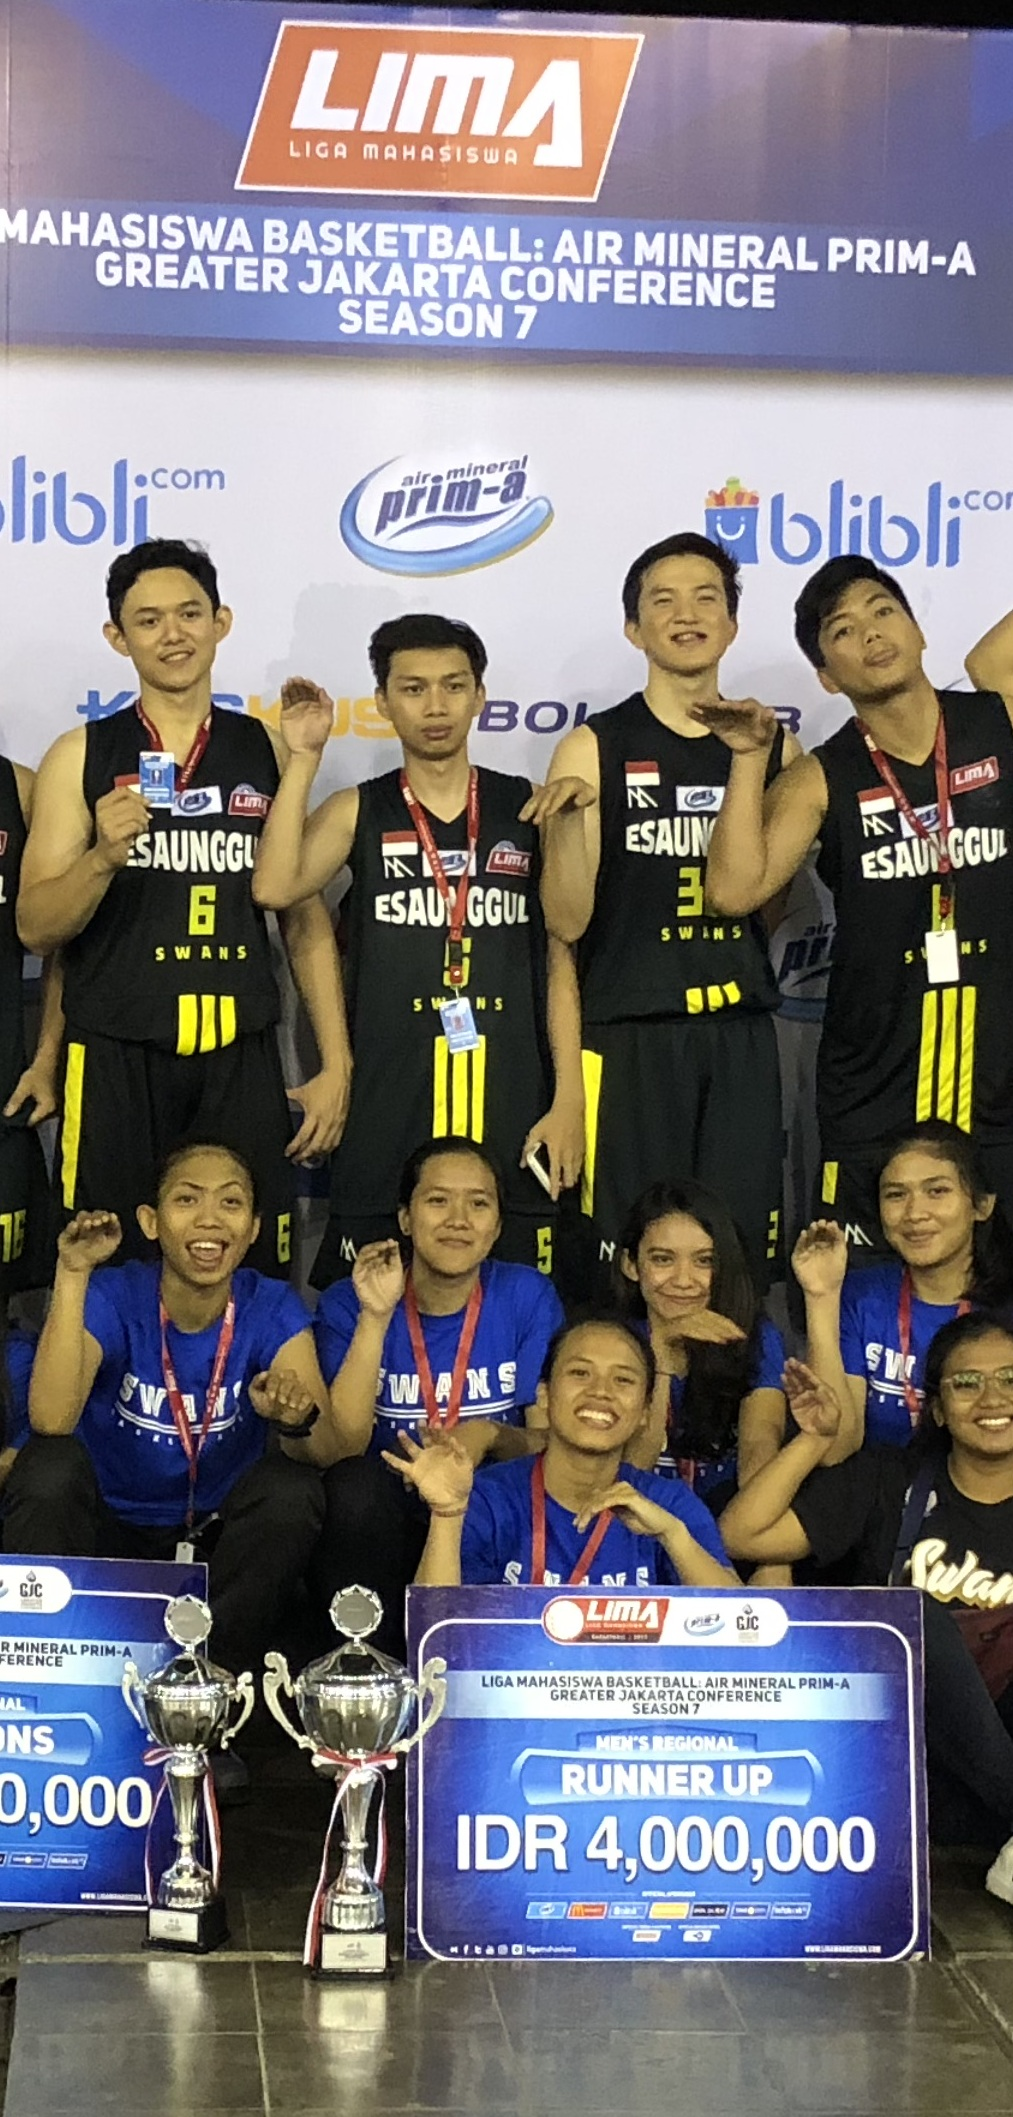 Keren!! The Swans Juara LIMA Basketball 2019